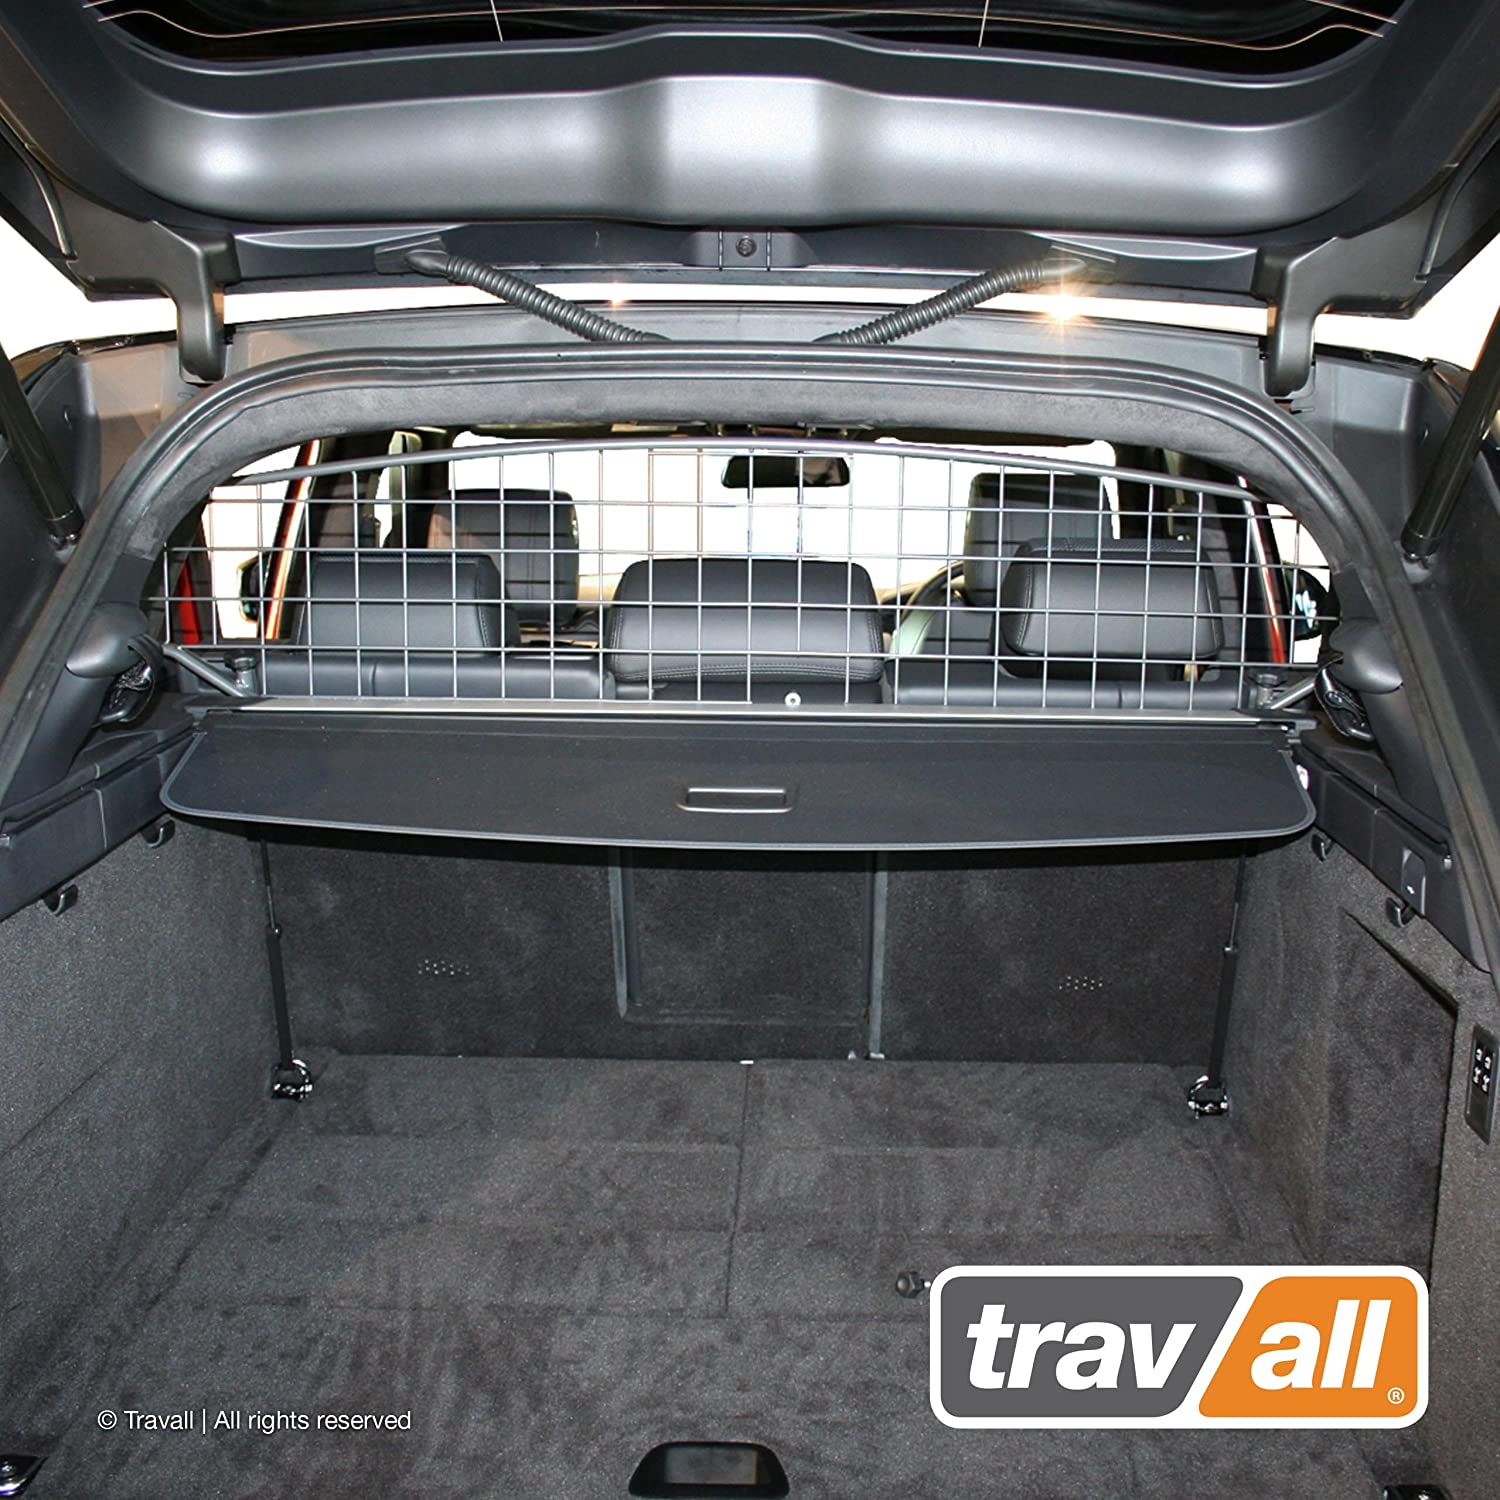 Travall Guard Compatible with Land Rover Range Rover Sport (2013-Current) Range Rover Sport SVR (2015-Current) TDG1394 - Rattle-Free Steel Pet Barrier